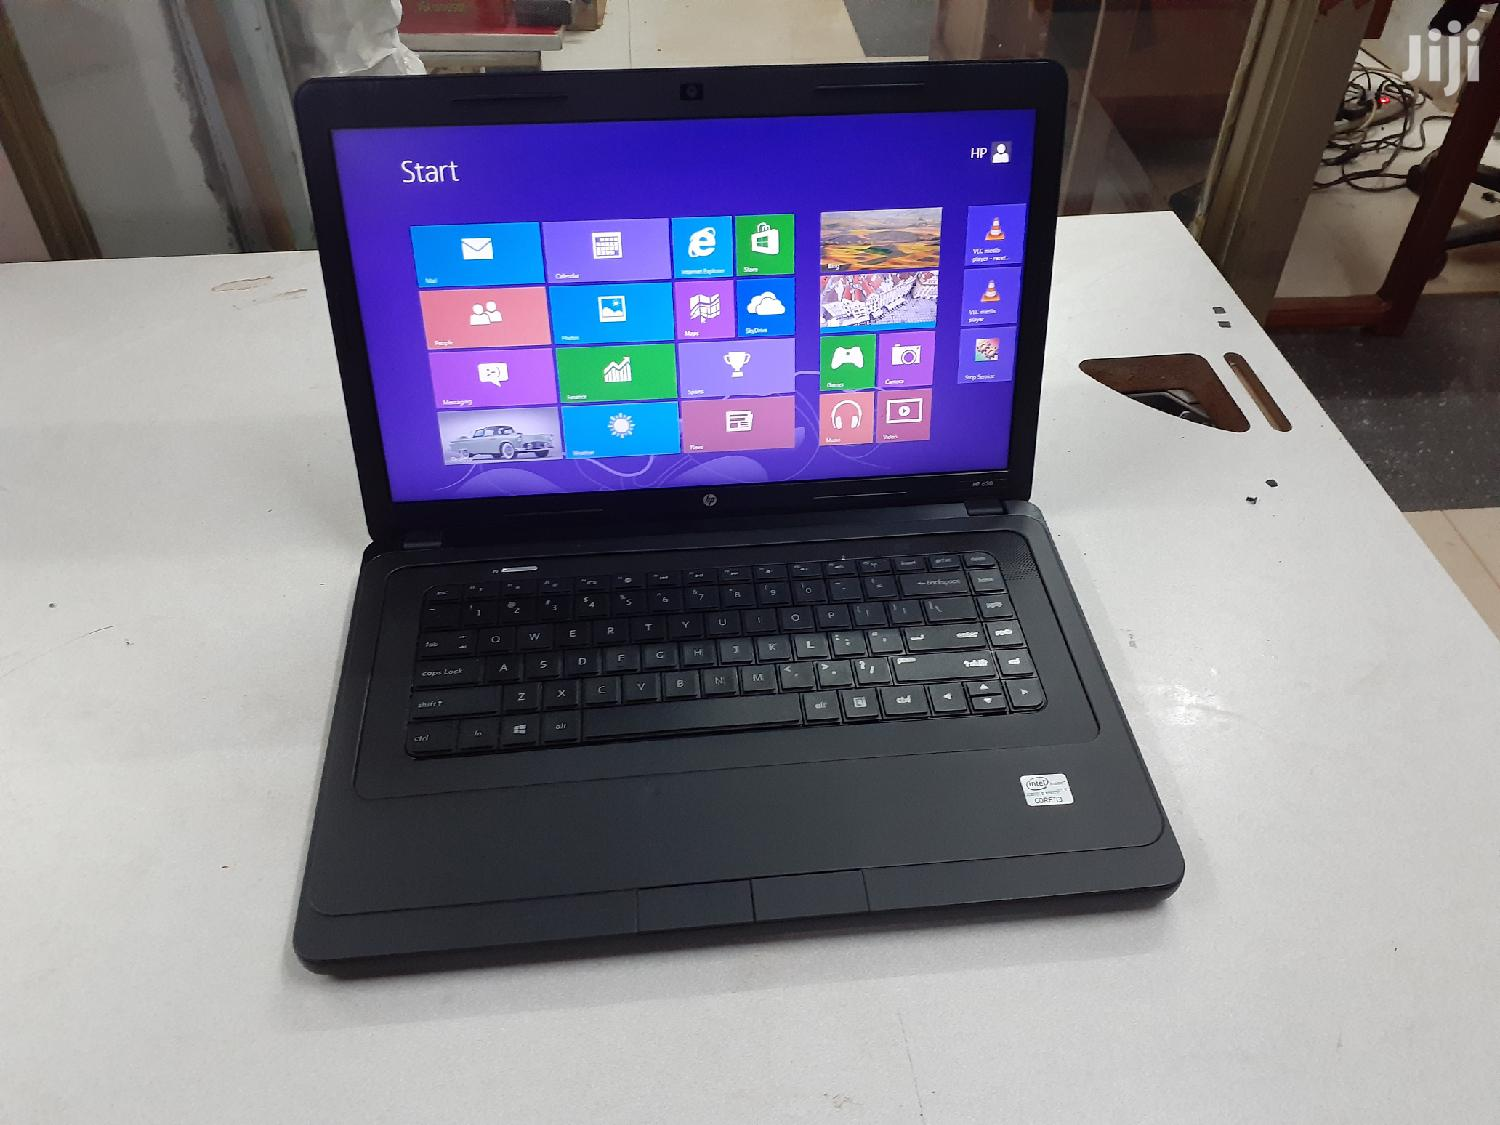 Laptop HP Pavilion 15 4GB Intel Core I3 HDD 320GB   Laptops & Computers for sale in Kampala, Central Region, Uganda